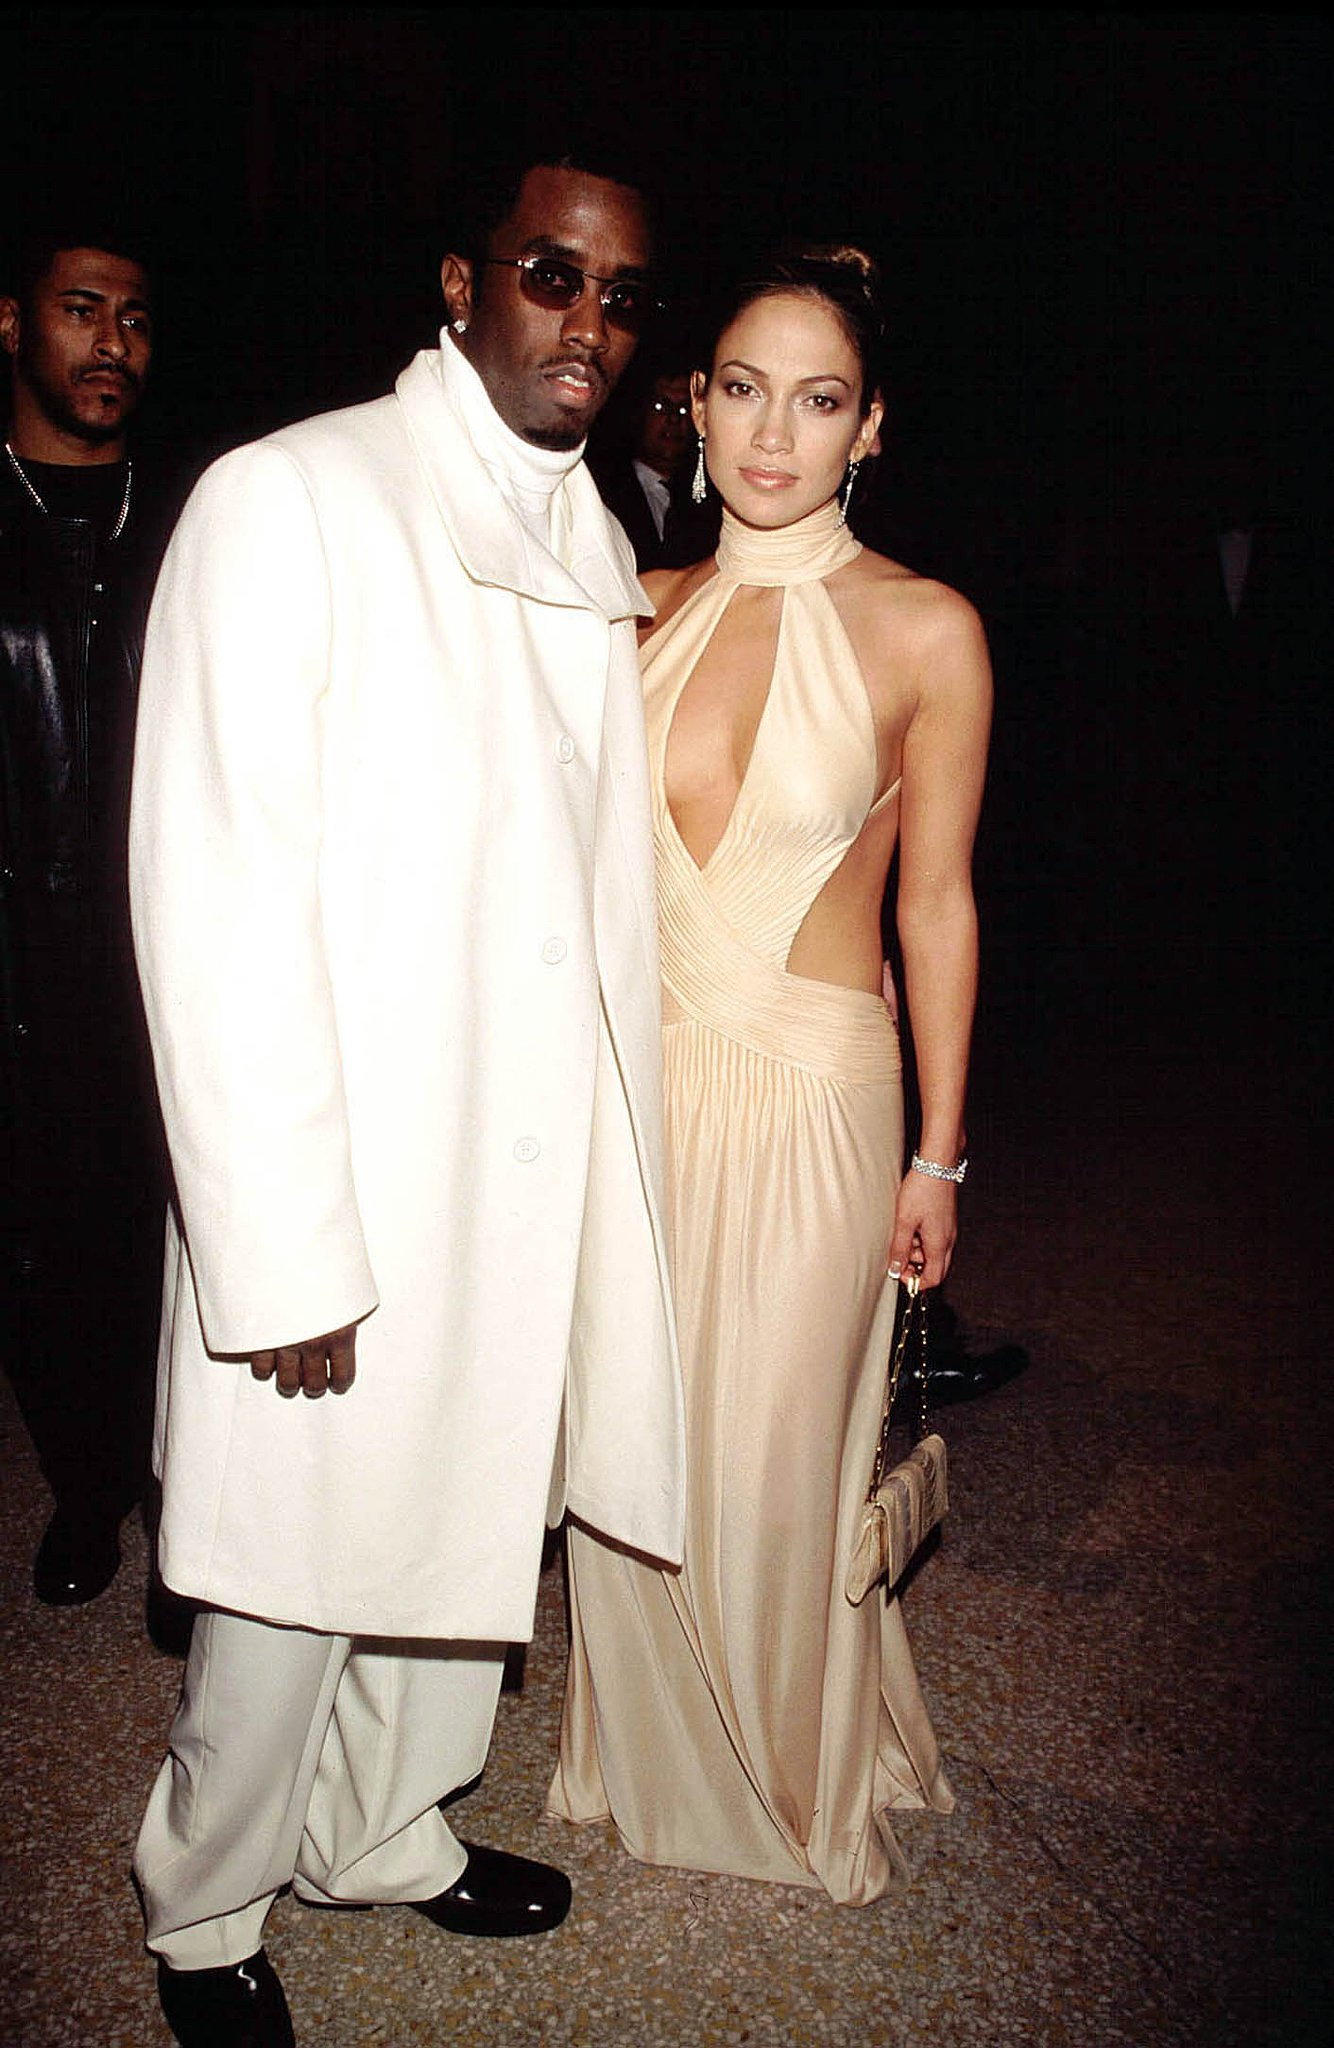 Stepping out with Diddy in a revealing cutout gown at the Met in '99.